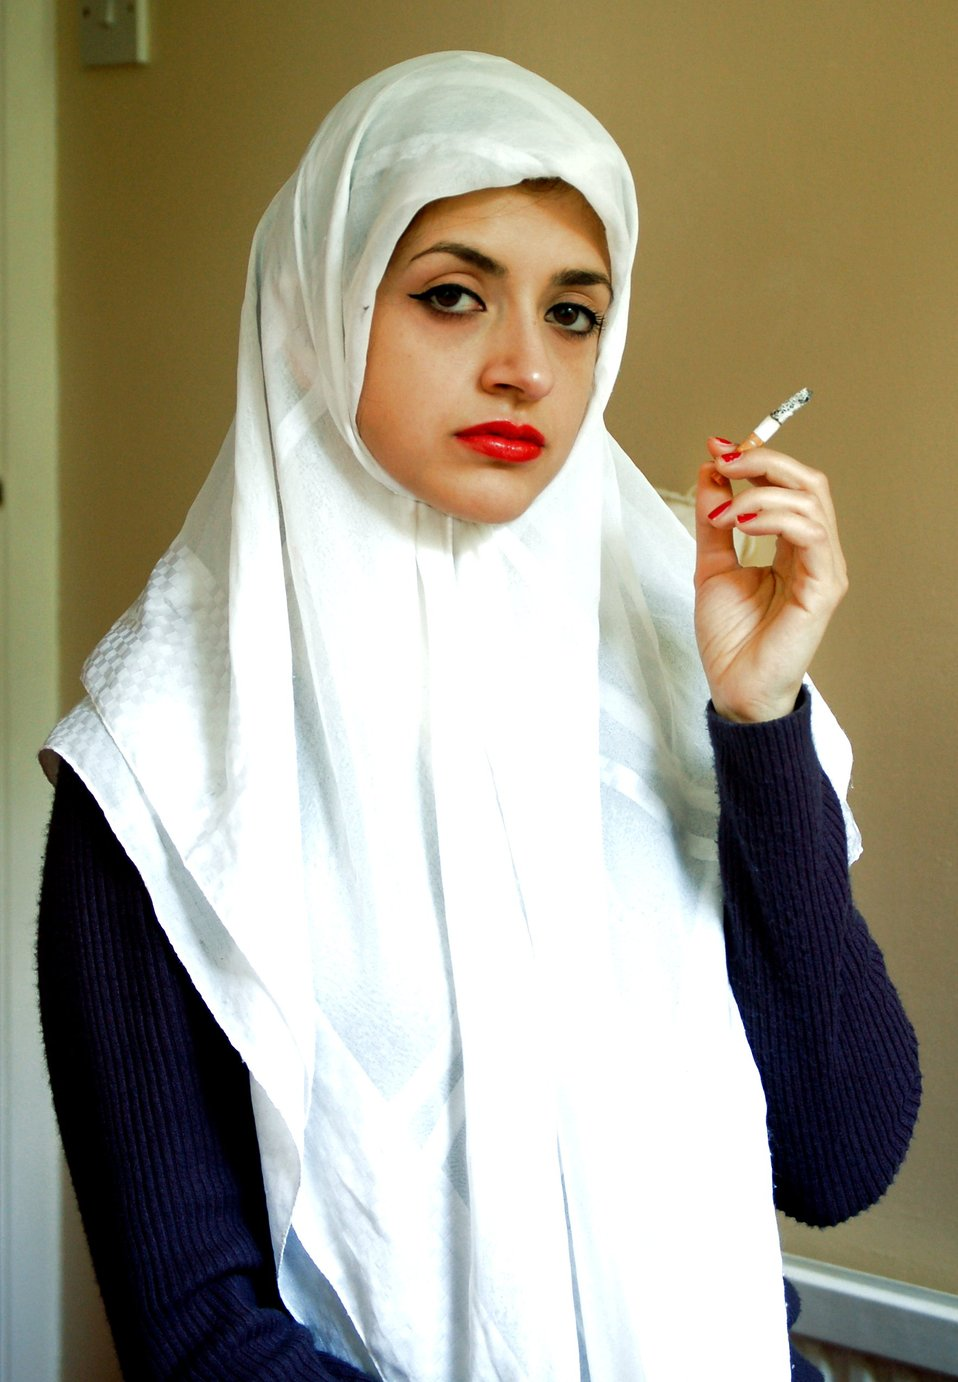 kingfield muslim girl personals Singlemuslimcom the world's leading islamic muslim singles, marriage and shaadi introduction service over 2 million members online register for free.